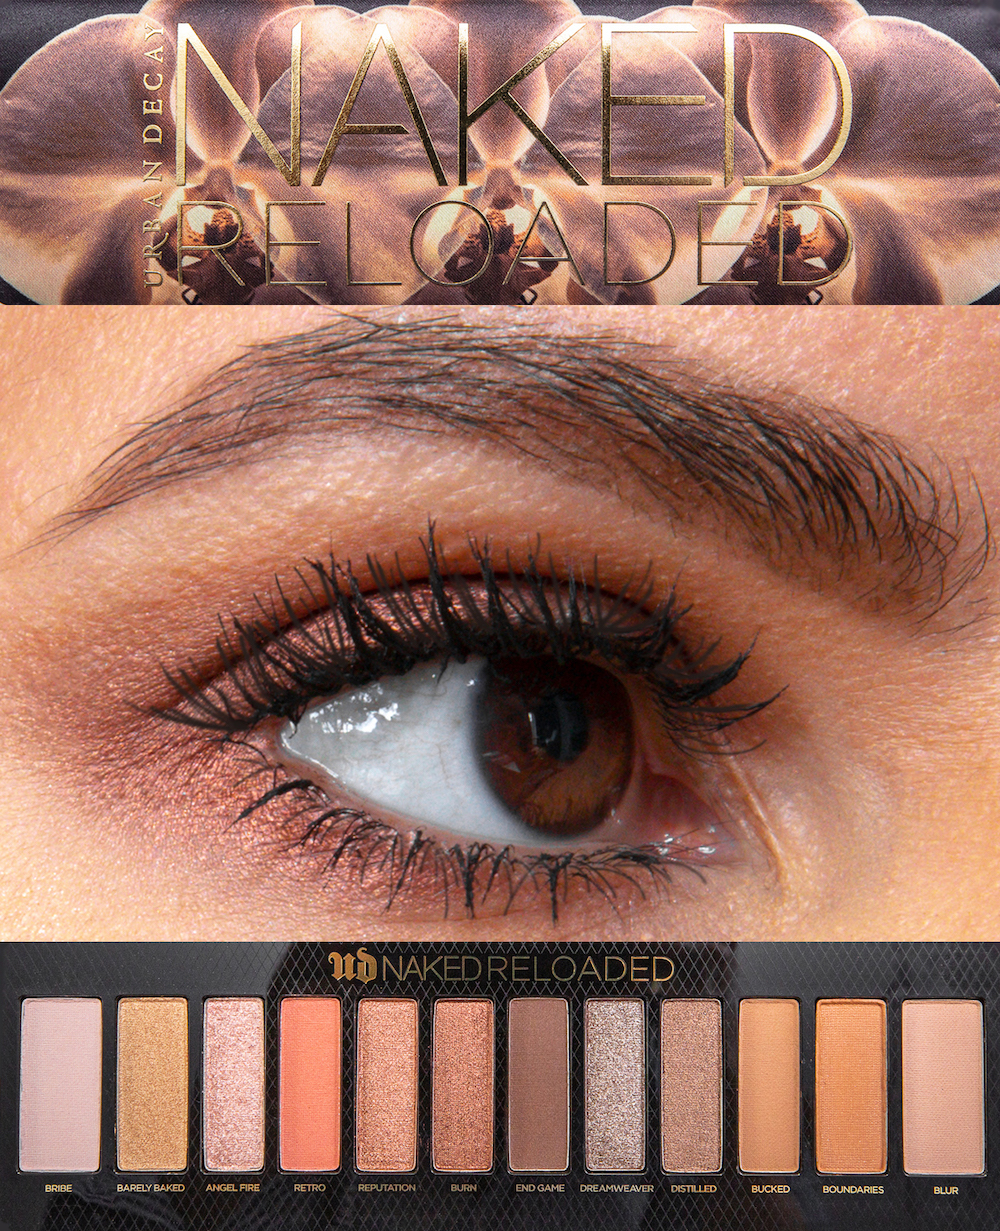 urban decay naked reloaded palette review.jpg